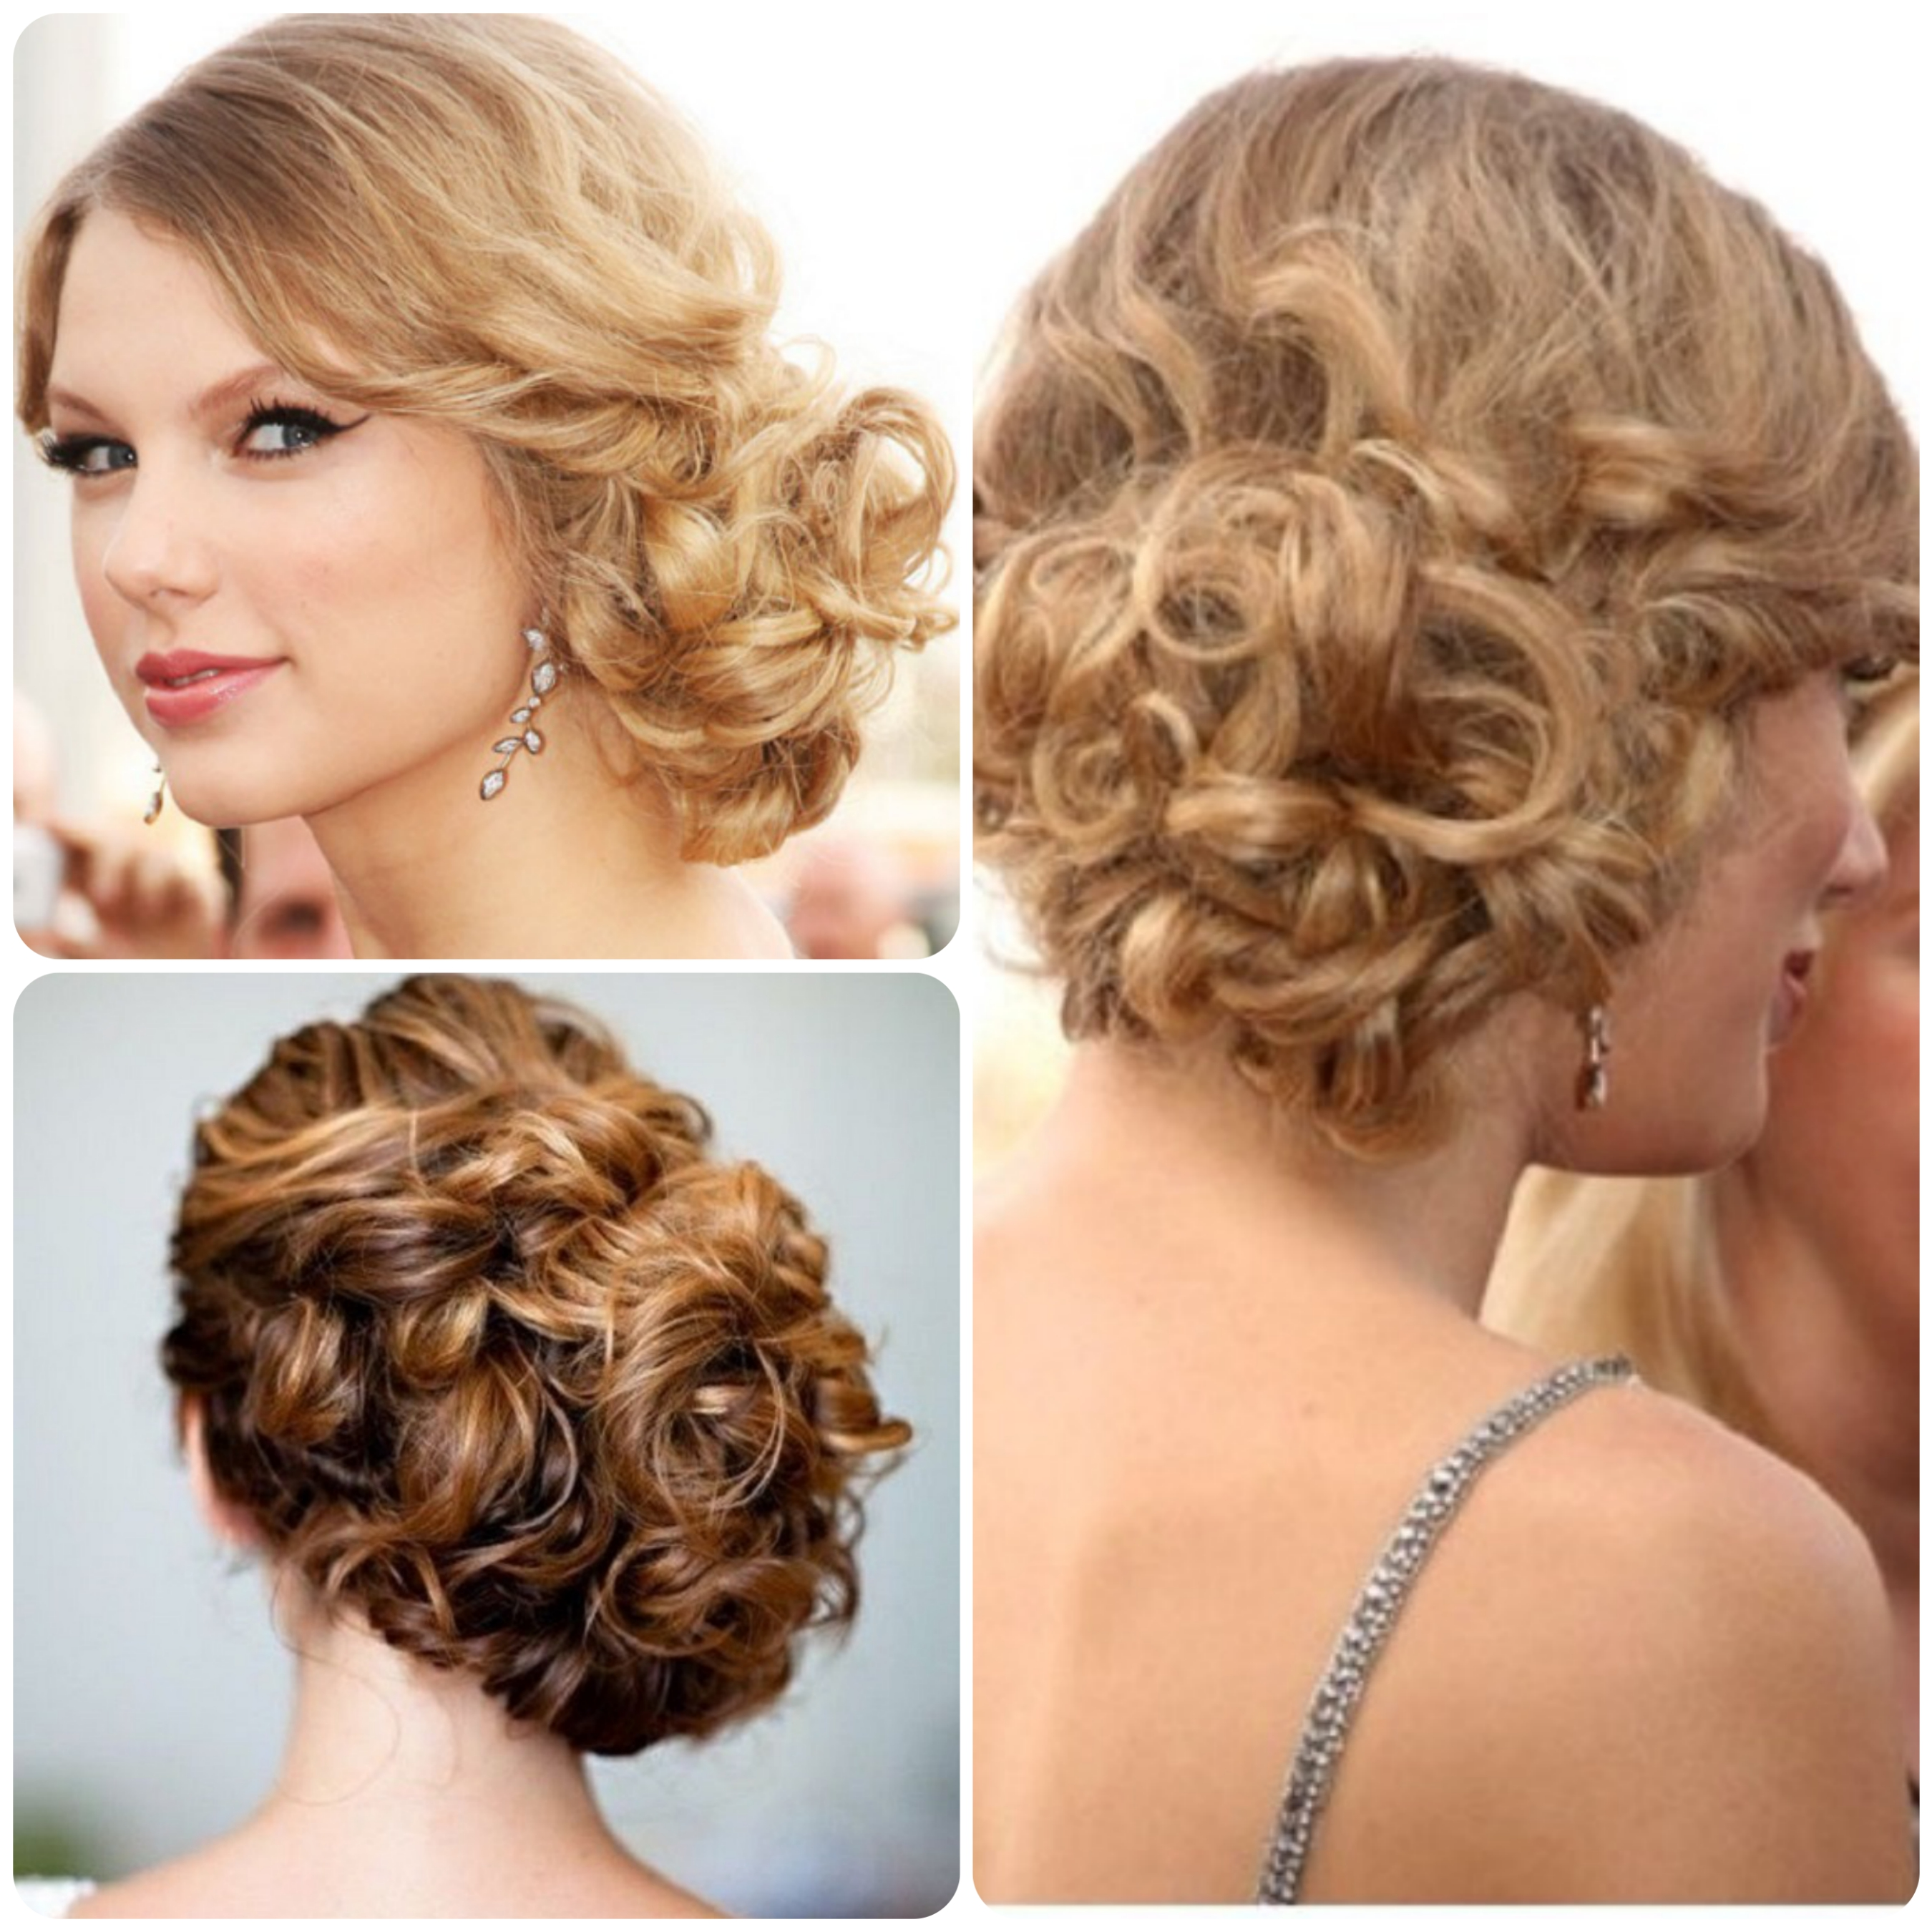 Stupendous Best Updo Hairstyles Modish Messy For Short Hairs Stylo Planet Short Hairstyles Gunalazisus